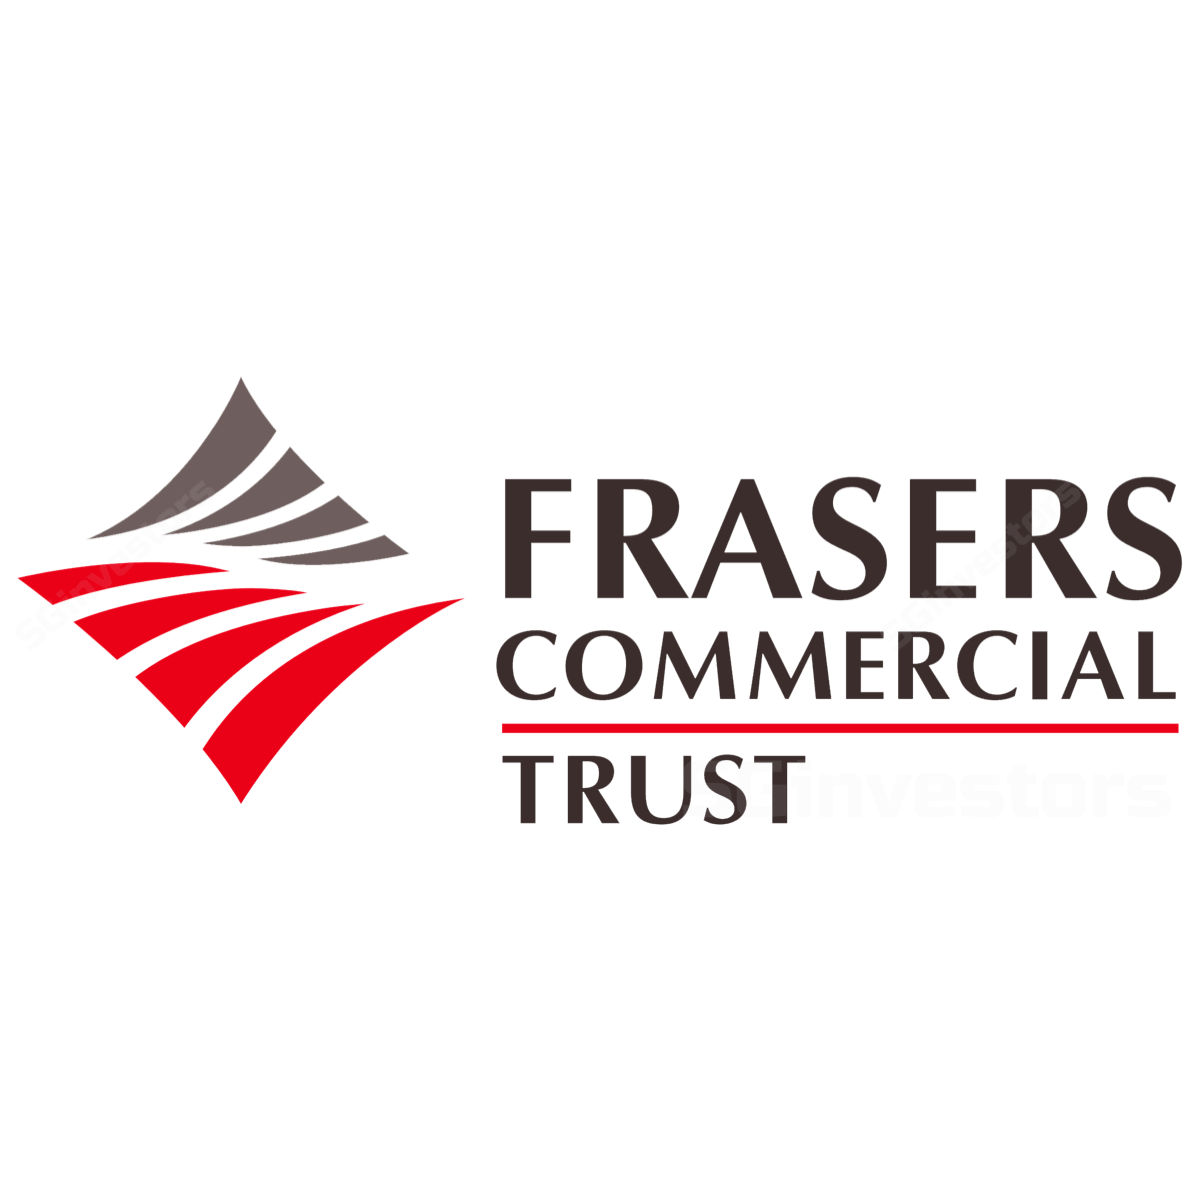 Frasers Commercial Trust - DBS Vickers 2017-11-06: Breaking Up Is Sometimes For The Best